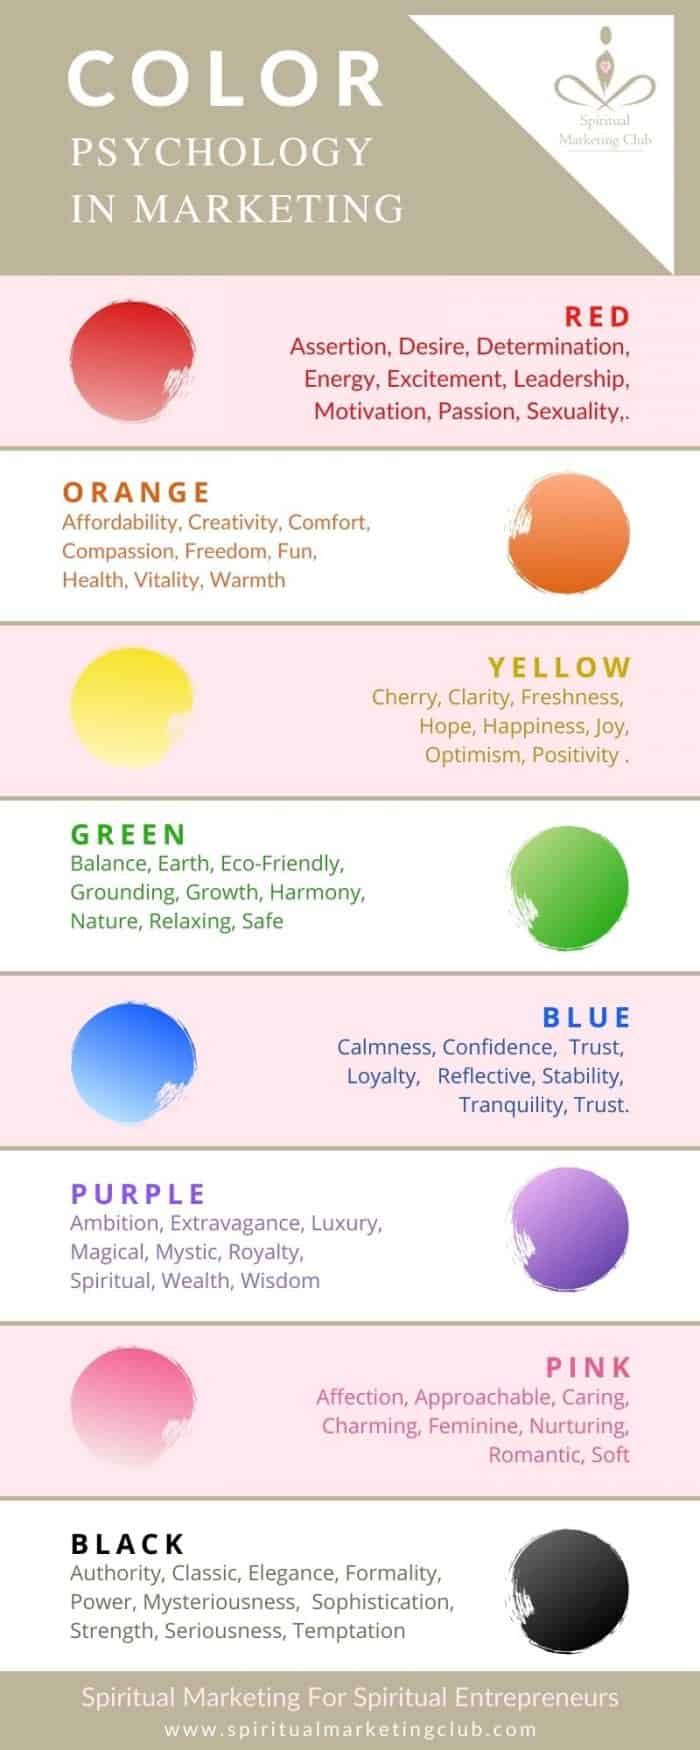 Colour Psychology Infographic For Marketing